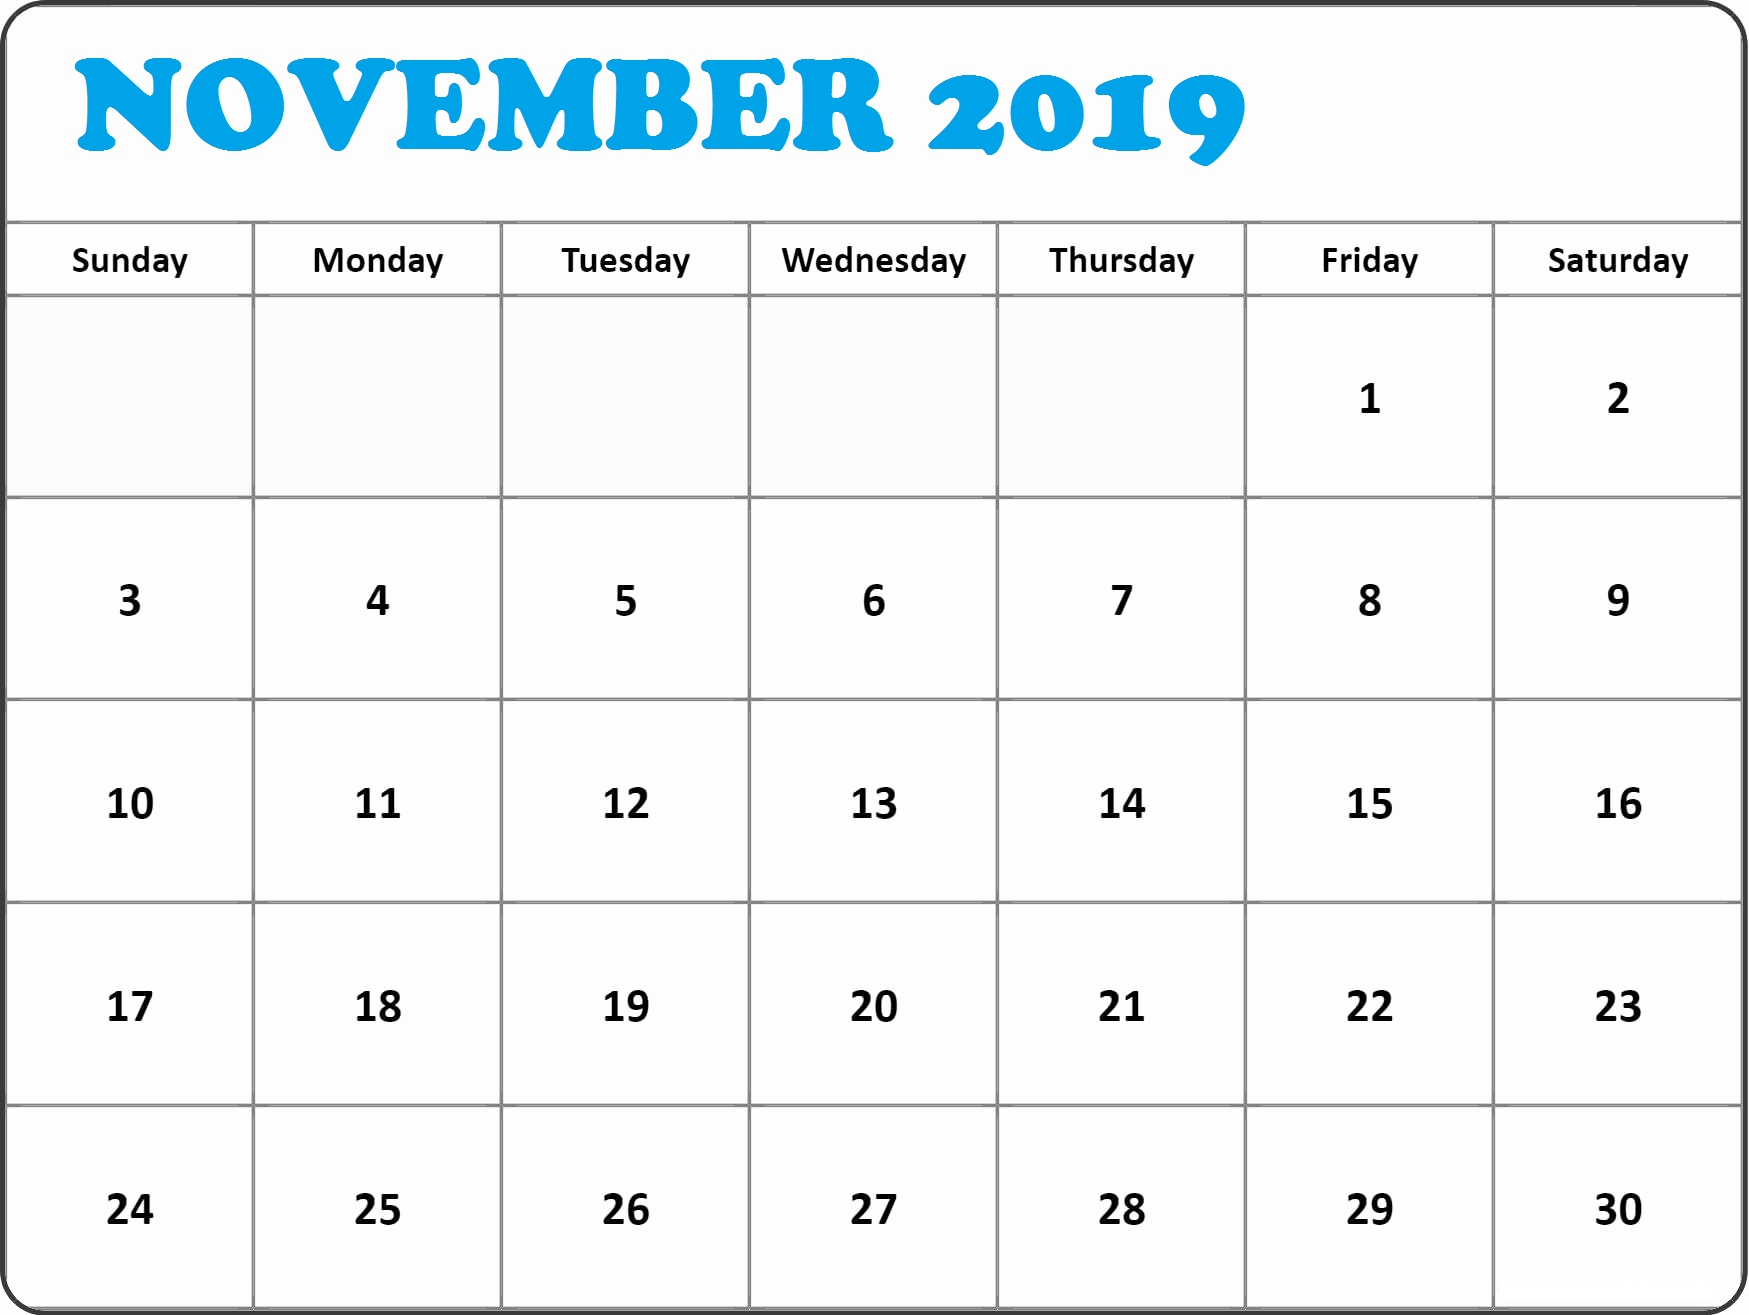 image about Free Printable November Calendar named No cost Printable November 2019 Calendar Template Blank With Notes